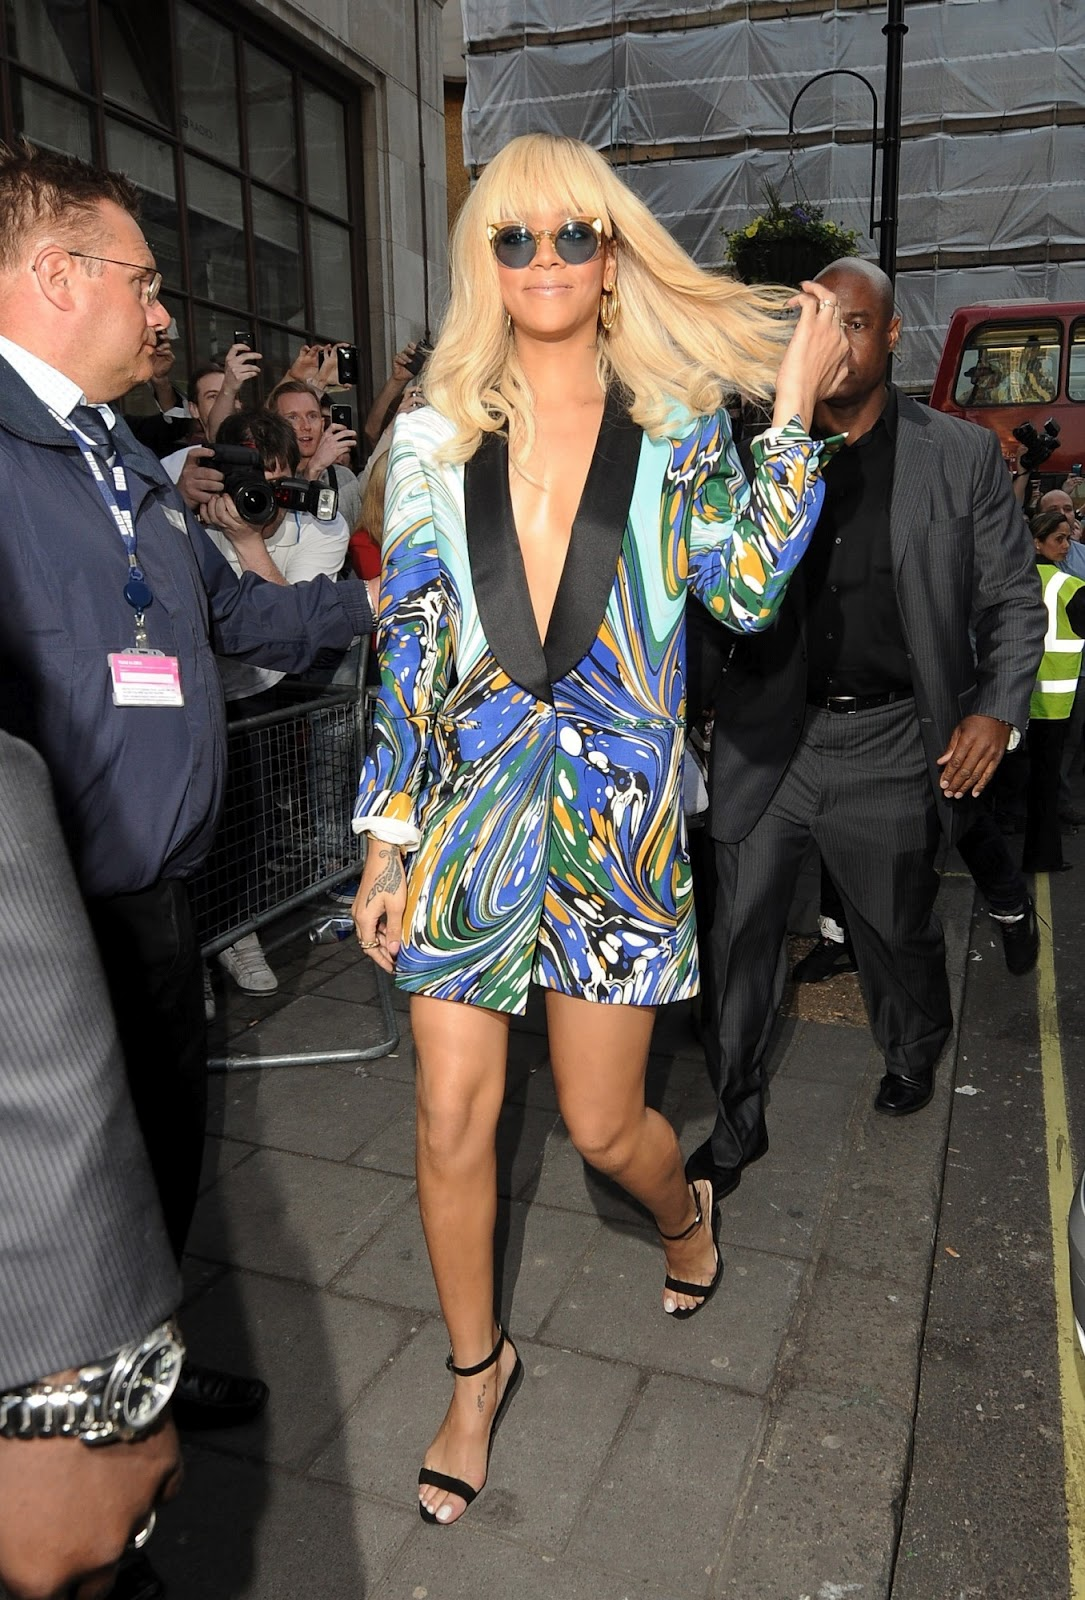 http://1.bp.blogspot.com/-IhXOol5CmQk/T3hwaZKIgLI/AAAAAAAAAIY/wuvZeipaocU/s1600/Rihanna+arrives+at+BBC+Radio+1+studios+in+London+29.3.2012_09.jpg